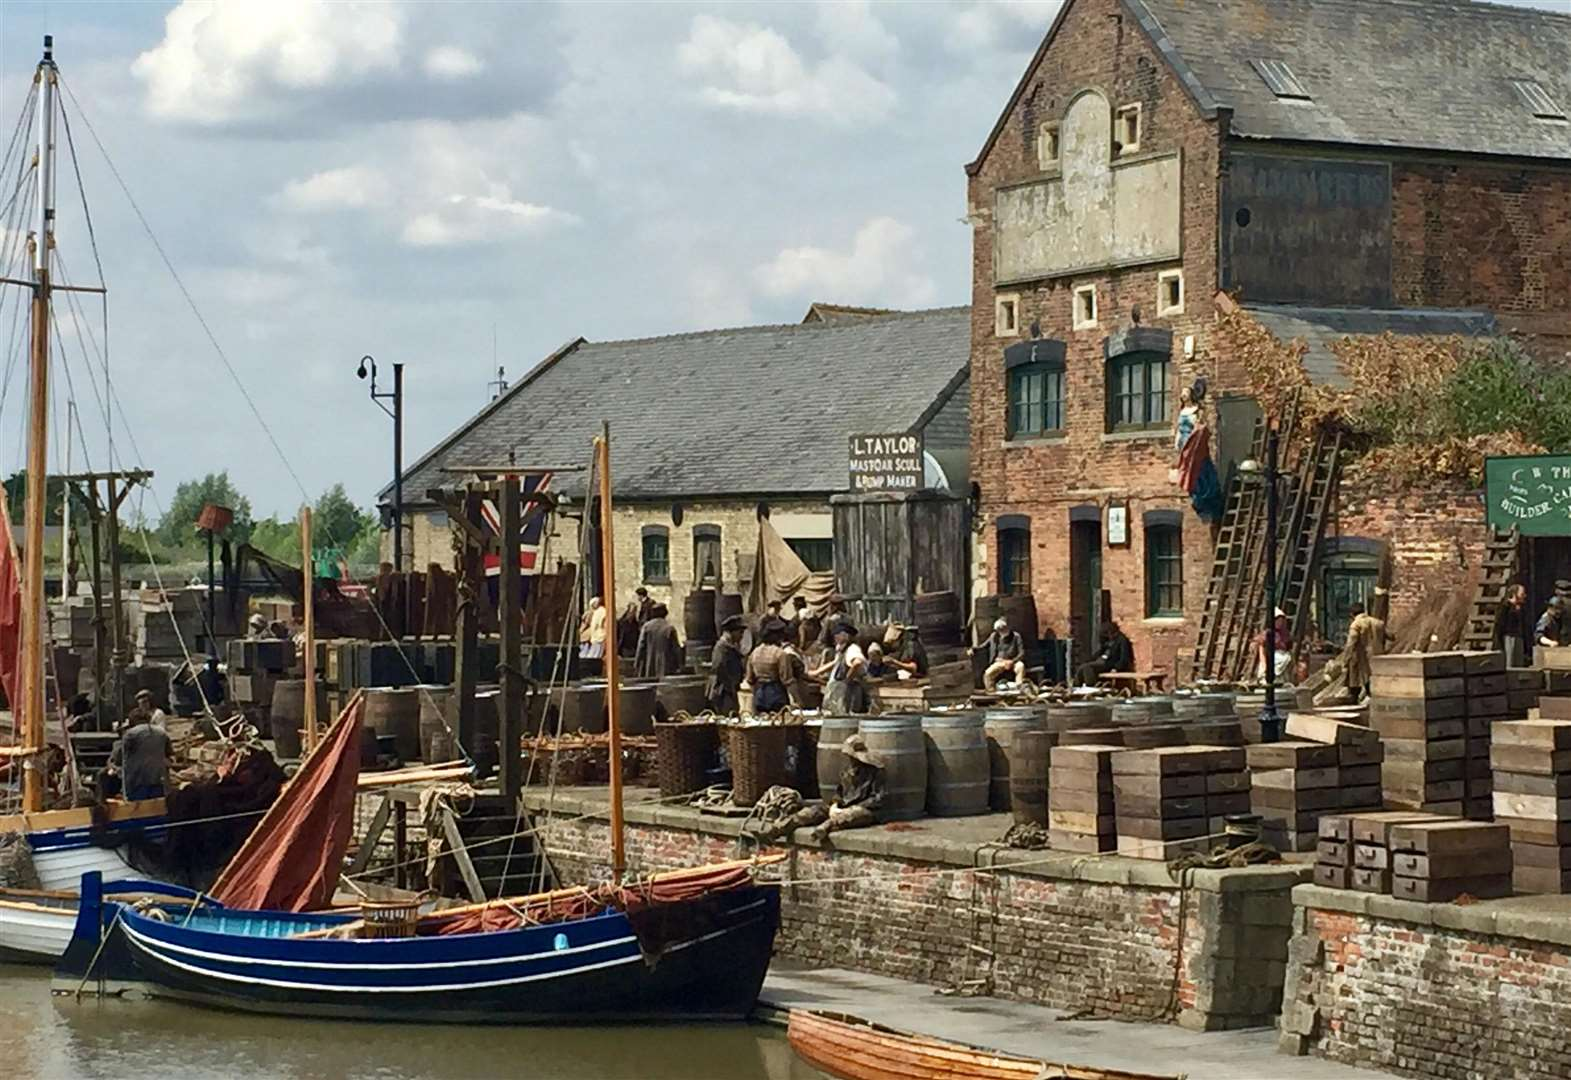 Filming of new movie starts in King's Lynn